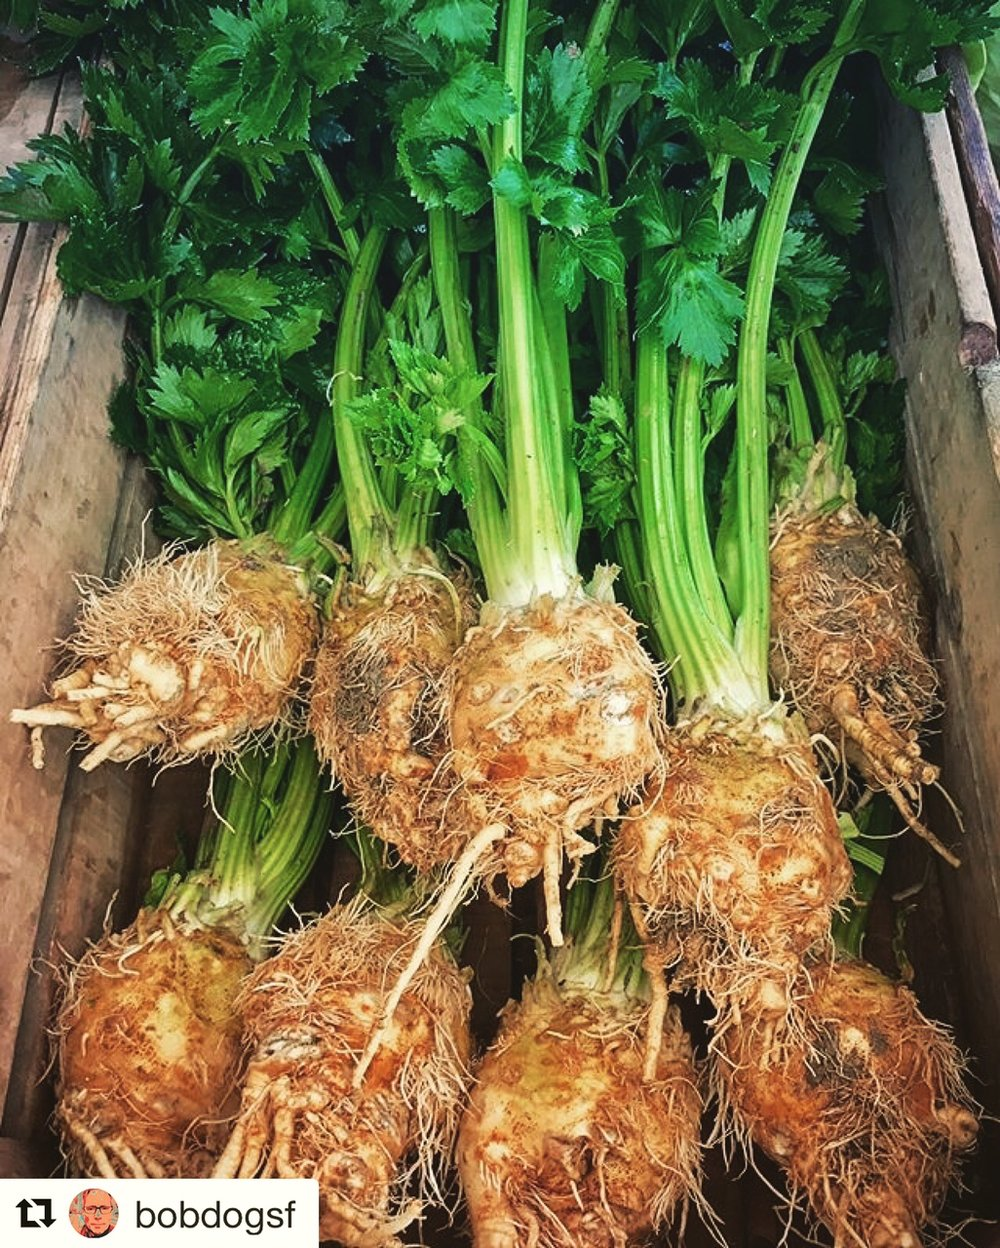 An under appreciated beauty - celeriac.